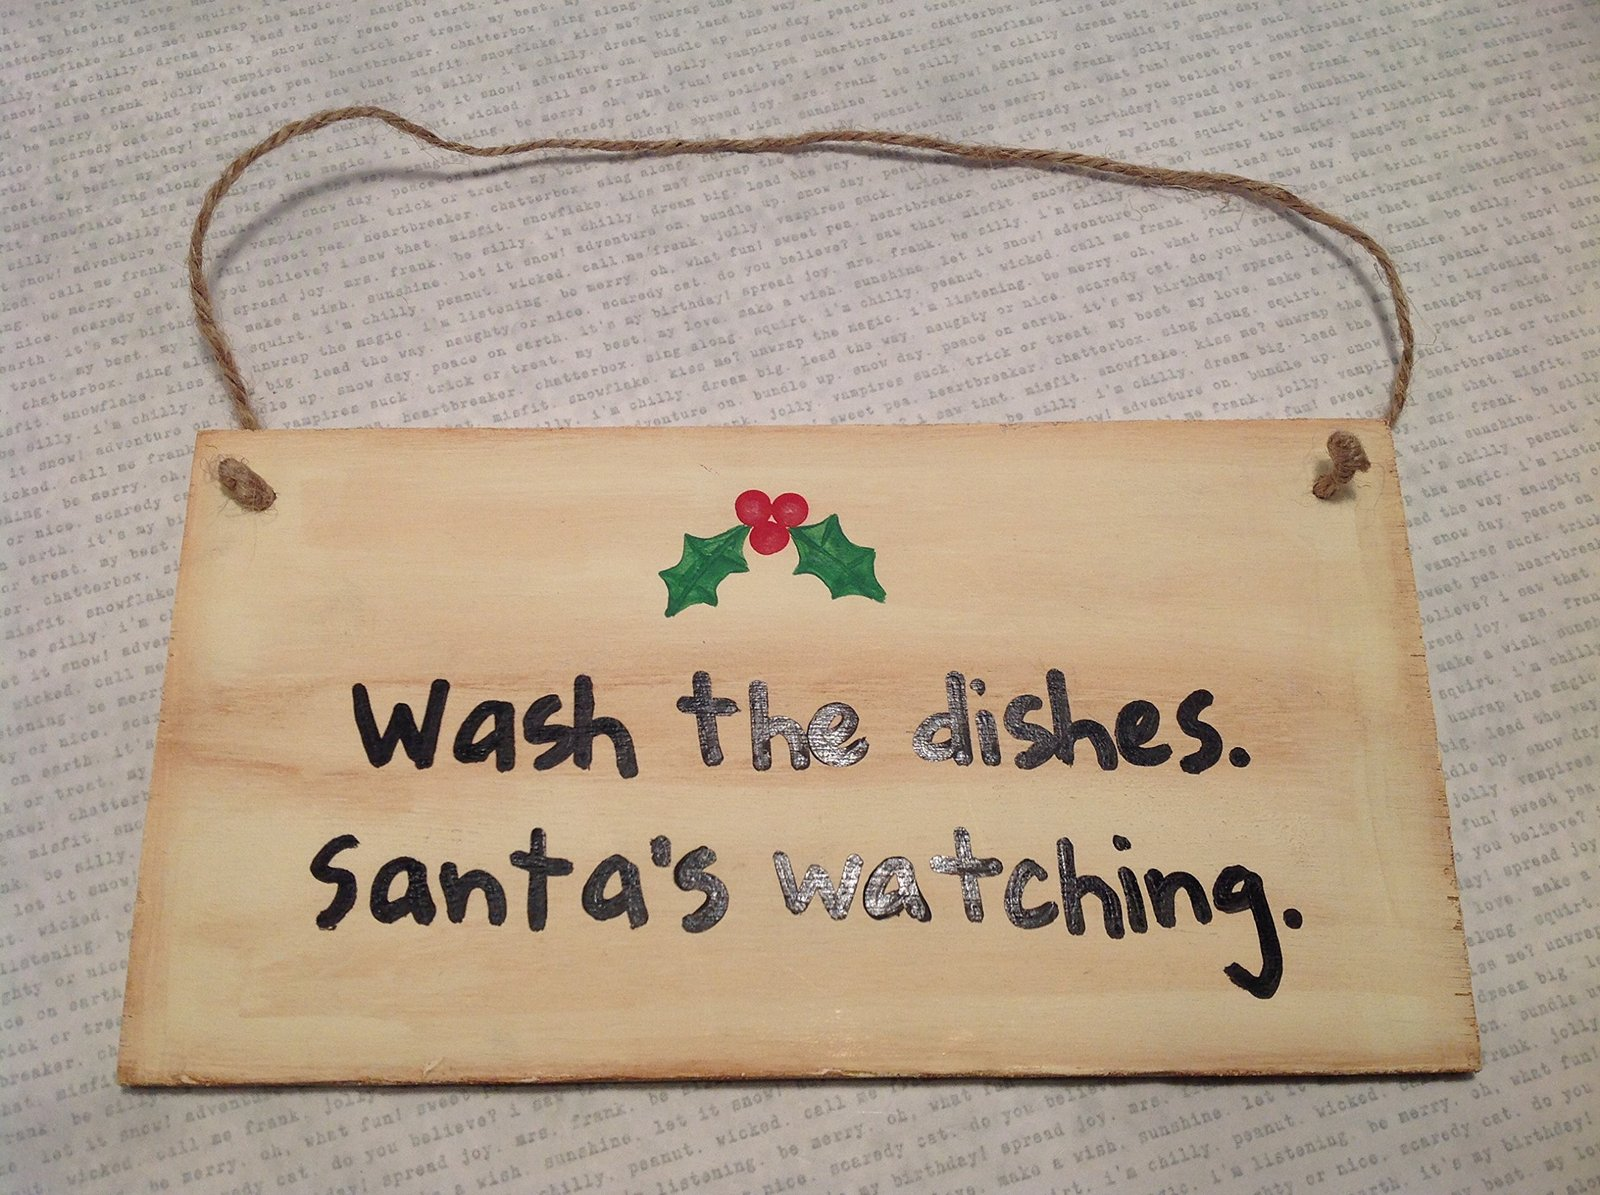 Wash the Dishes. Santa's Watching. Handmade Wooden Wall Plaque by Elf Works Lane